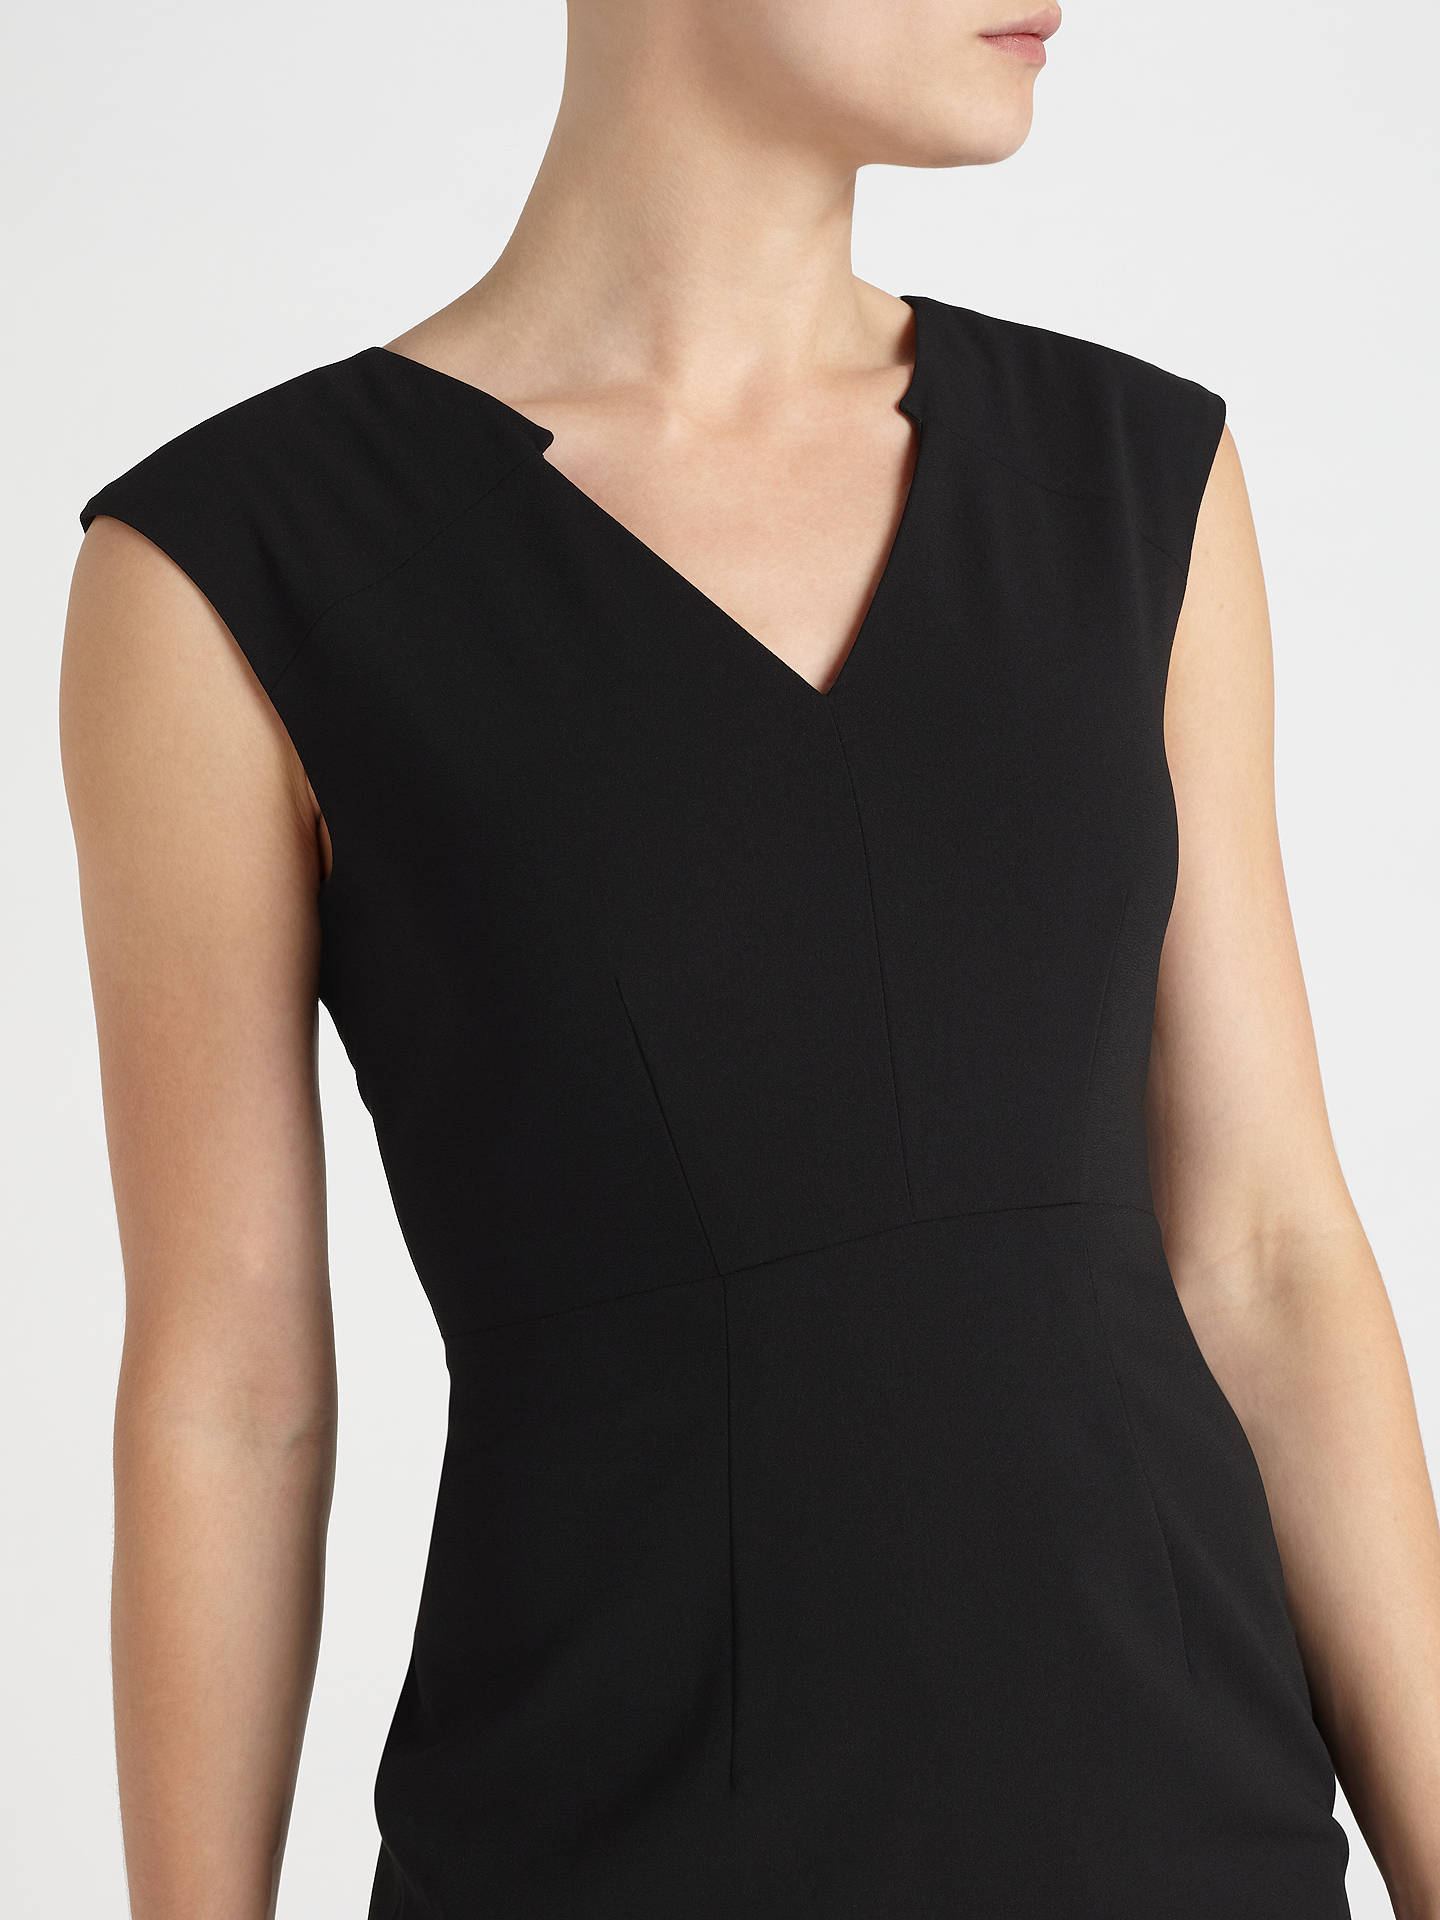 BuyJohn Lewis & Partners Eva Crepe Dress, Black, 8 Online at johnlewis.com